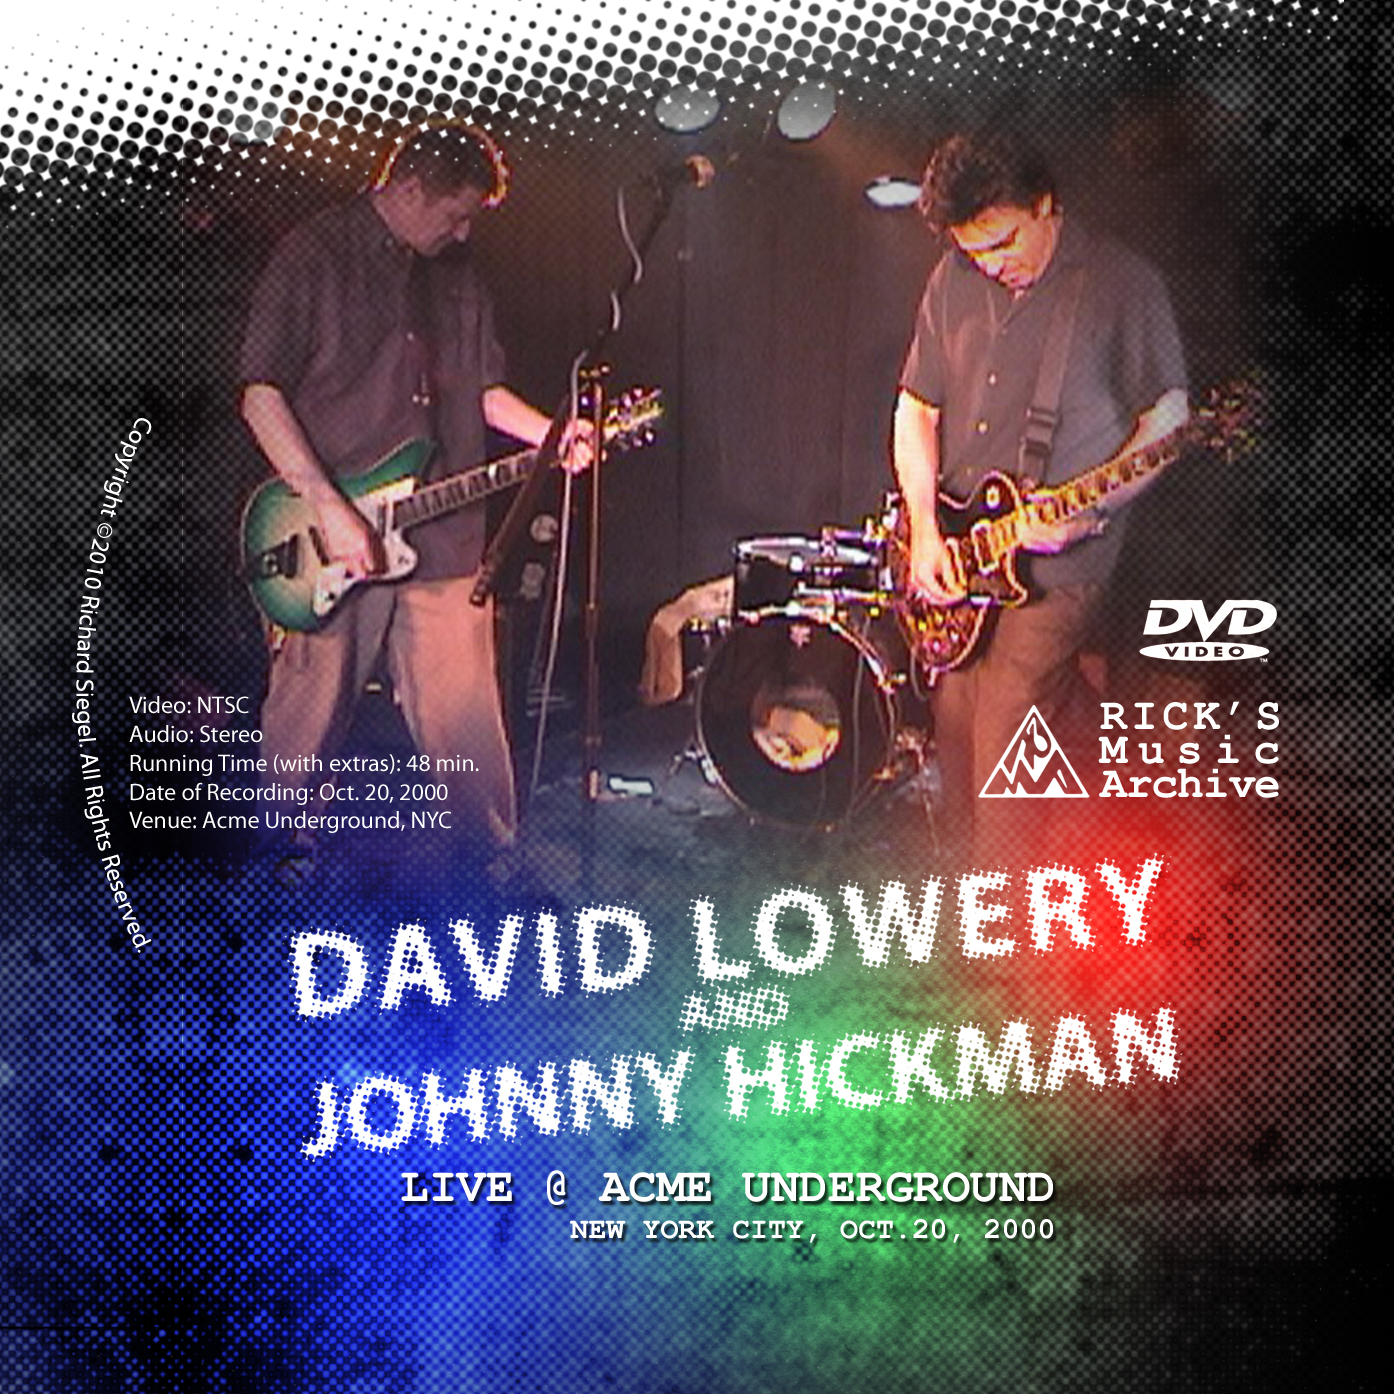 David Lowery and Johnny Hickman